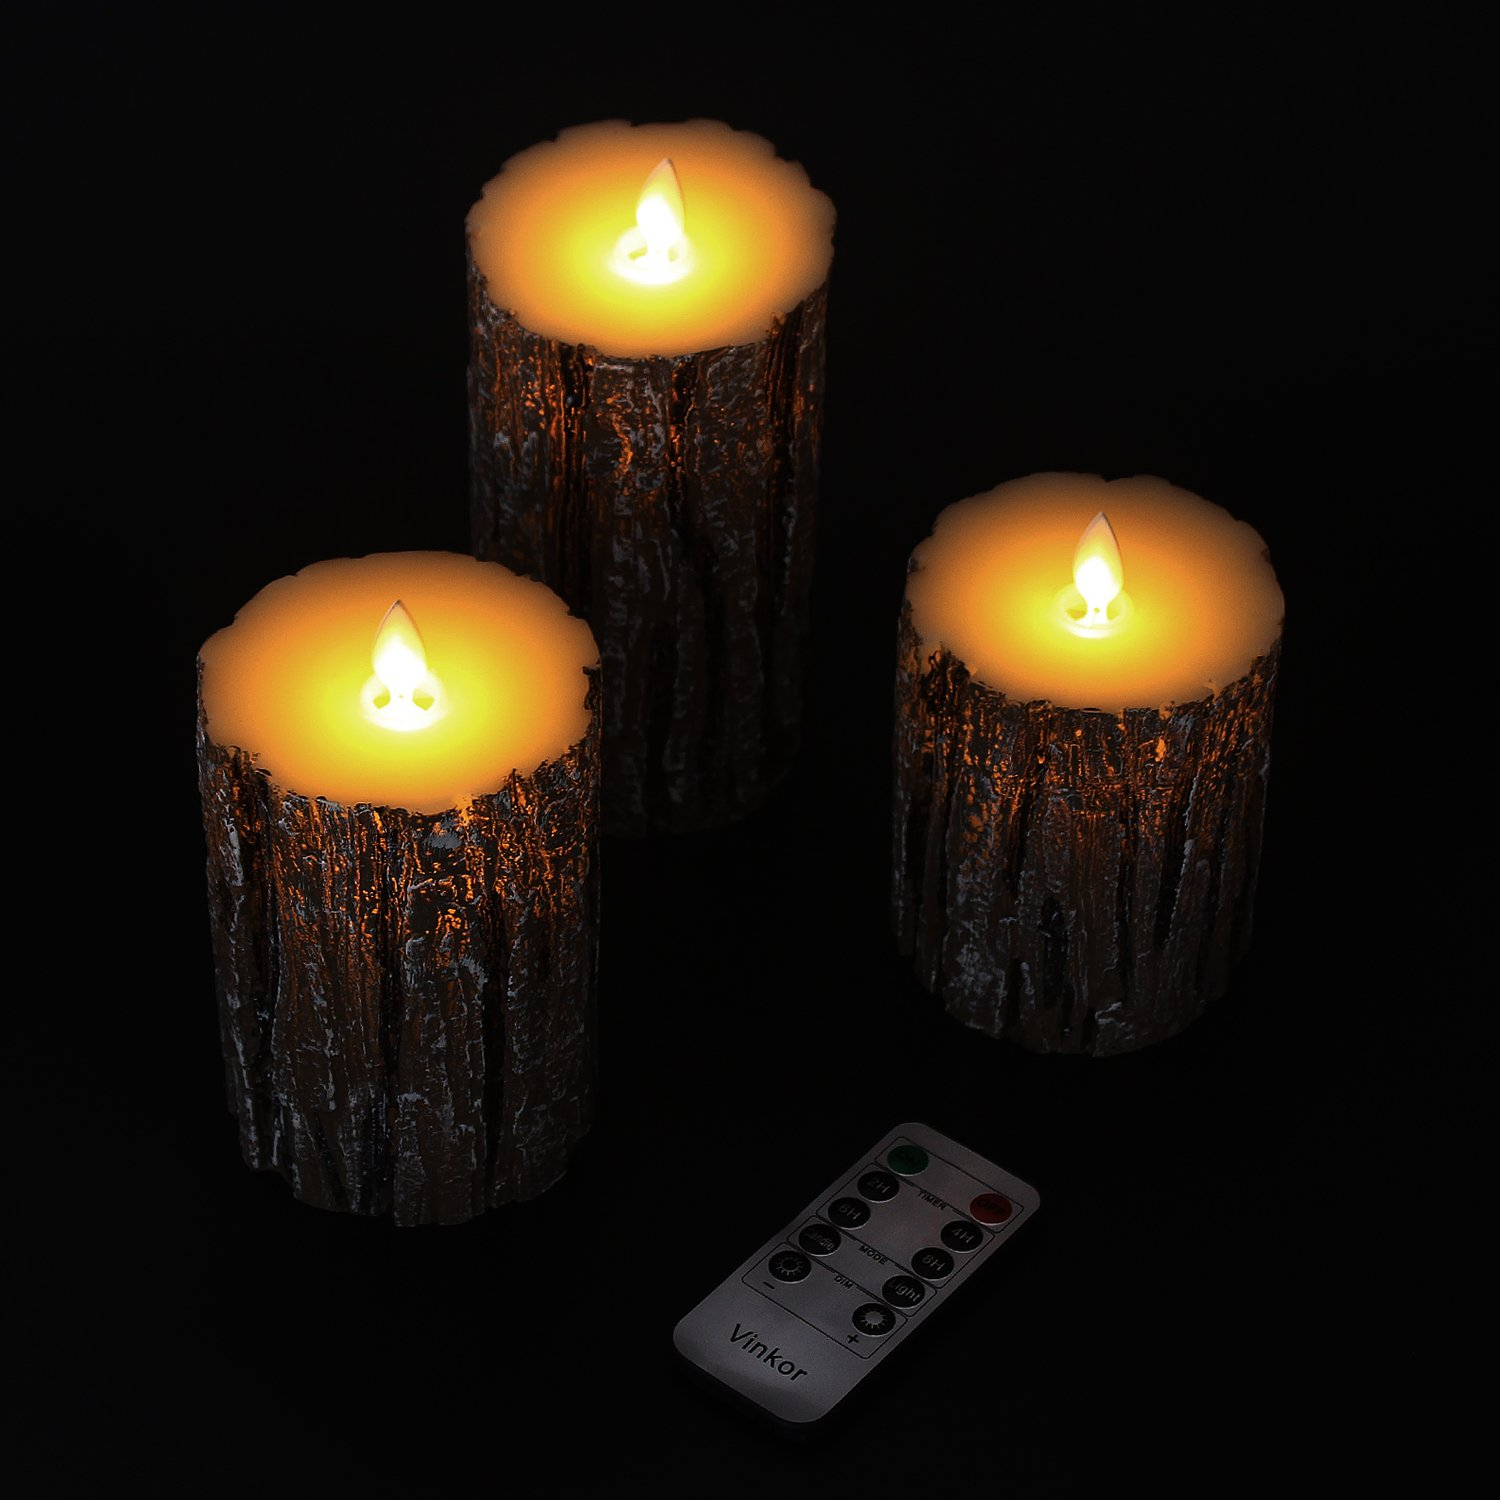 Vinkor Flameless Candles Flickering Candles Decorative Battery Flameless Candle Classic Real Wax Pillar With Dancing LED Flame & 10-key Remote Control 2/4/6/ 8 Hours Timers (Birch Effect) by Vinkor (Image #3)